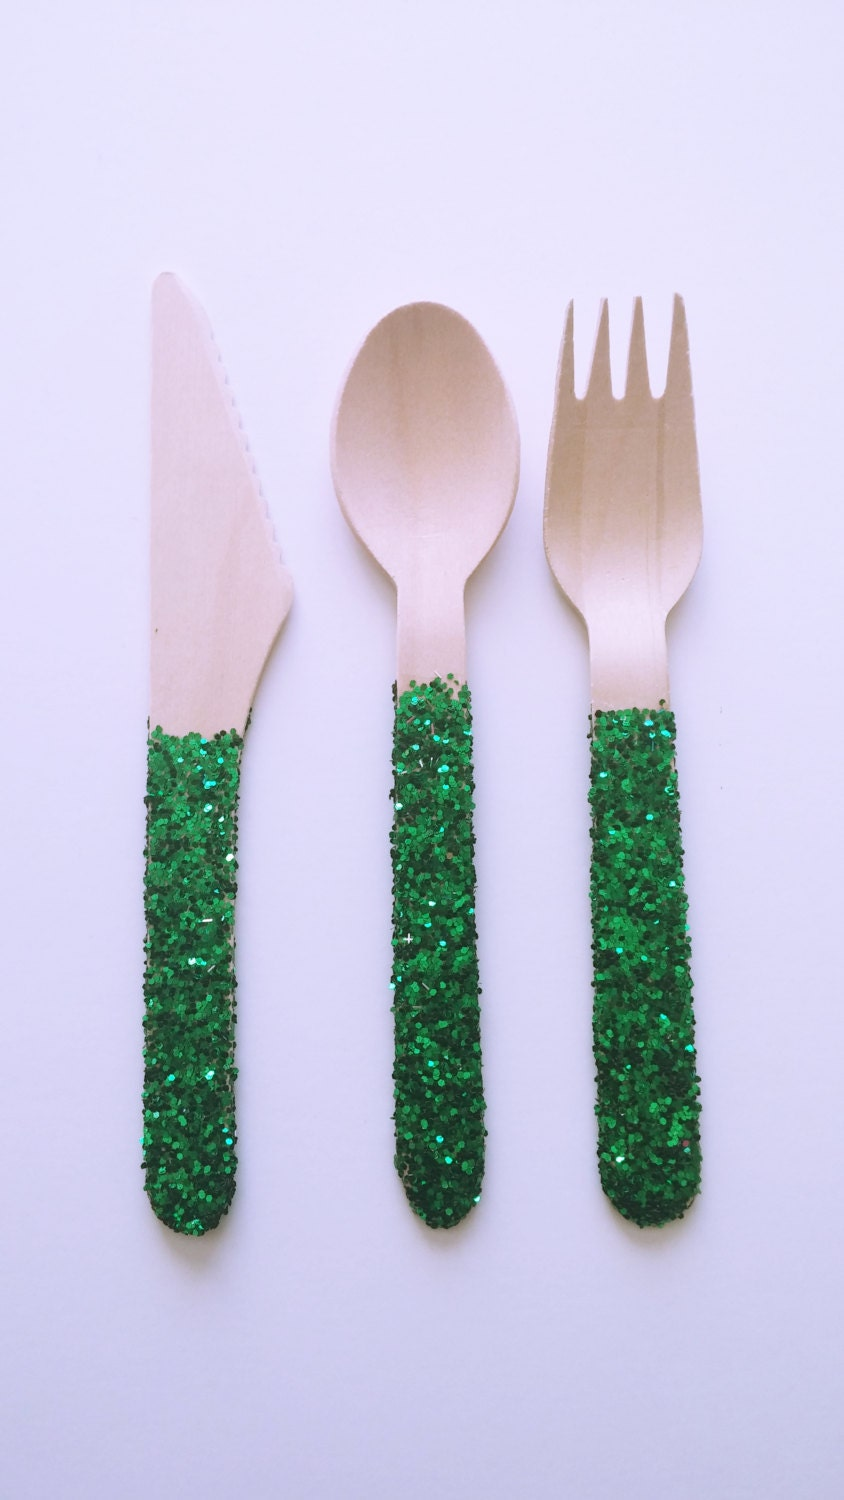 Green Glitter Wooden Fork Knife Spoon Sets Wooden